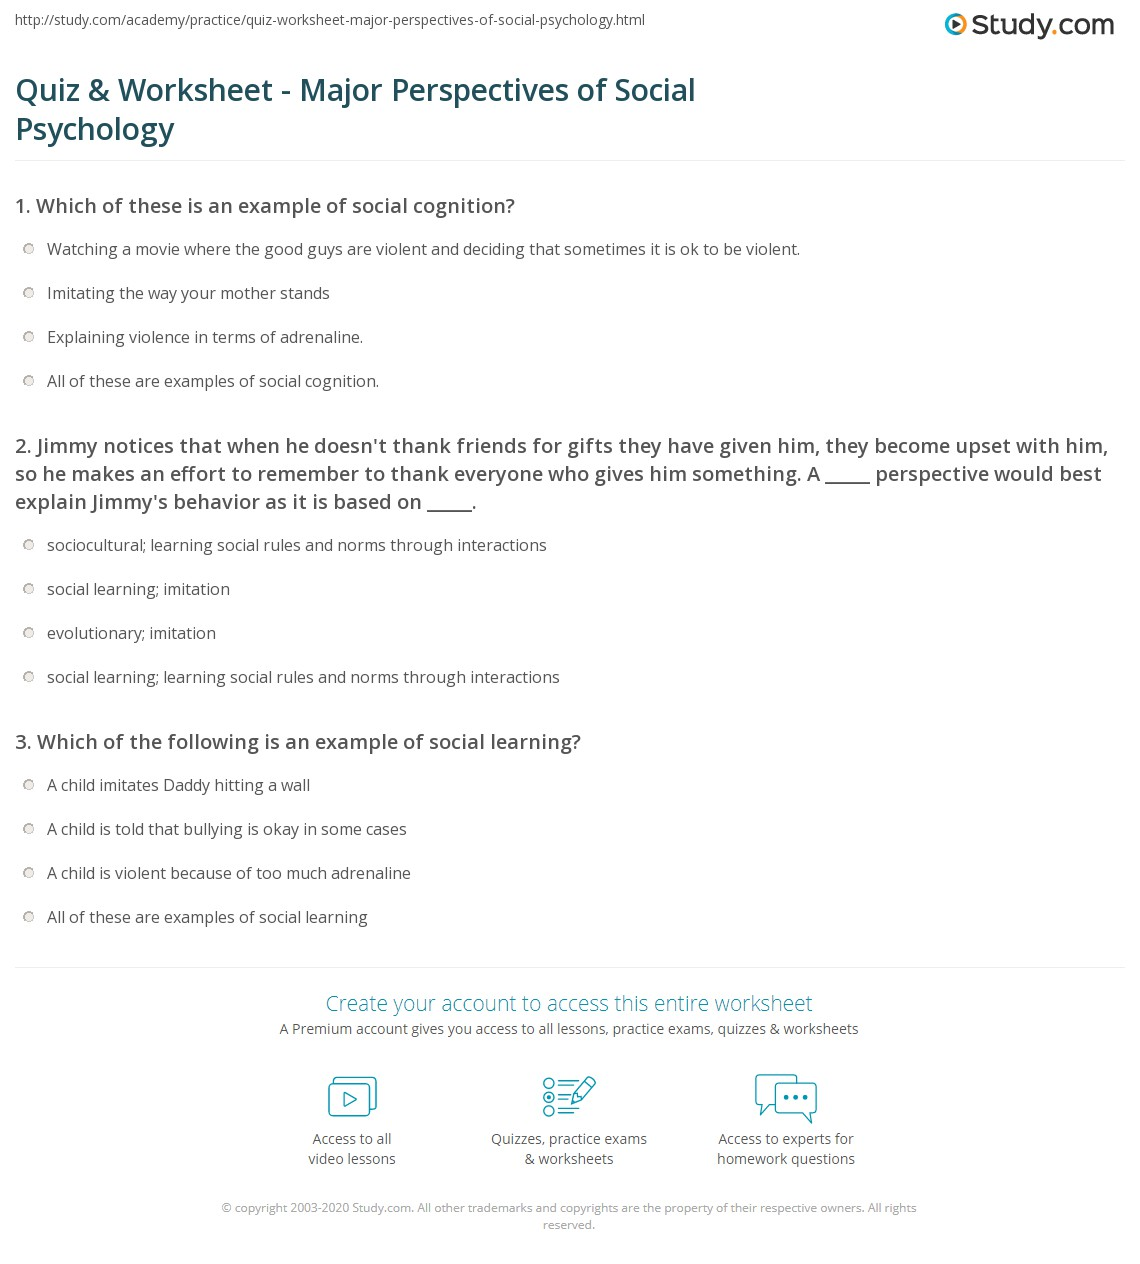 worksheet Perspective Worksheets quiz worksheet major perspectives of social psychology study com 1 jimmy notices that when he doesnt thank friends for gifts they have given him become upset with so makes an ef